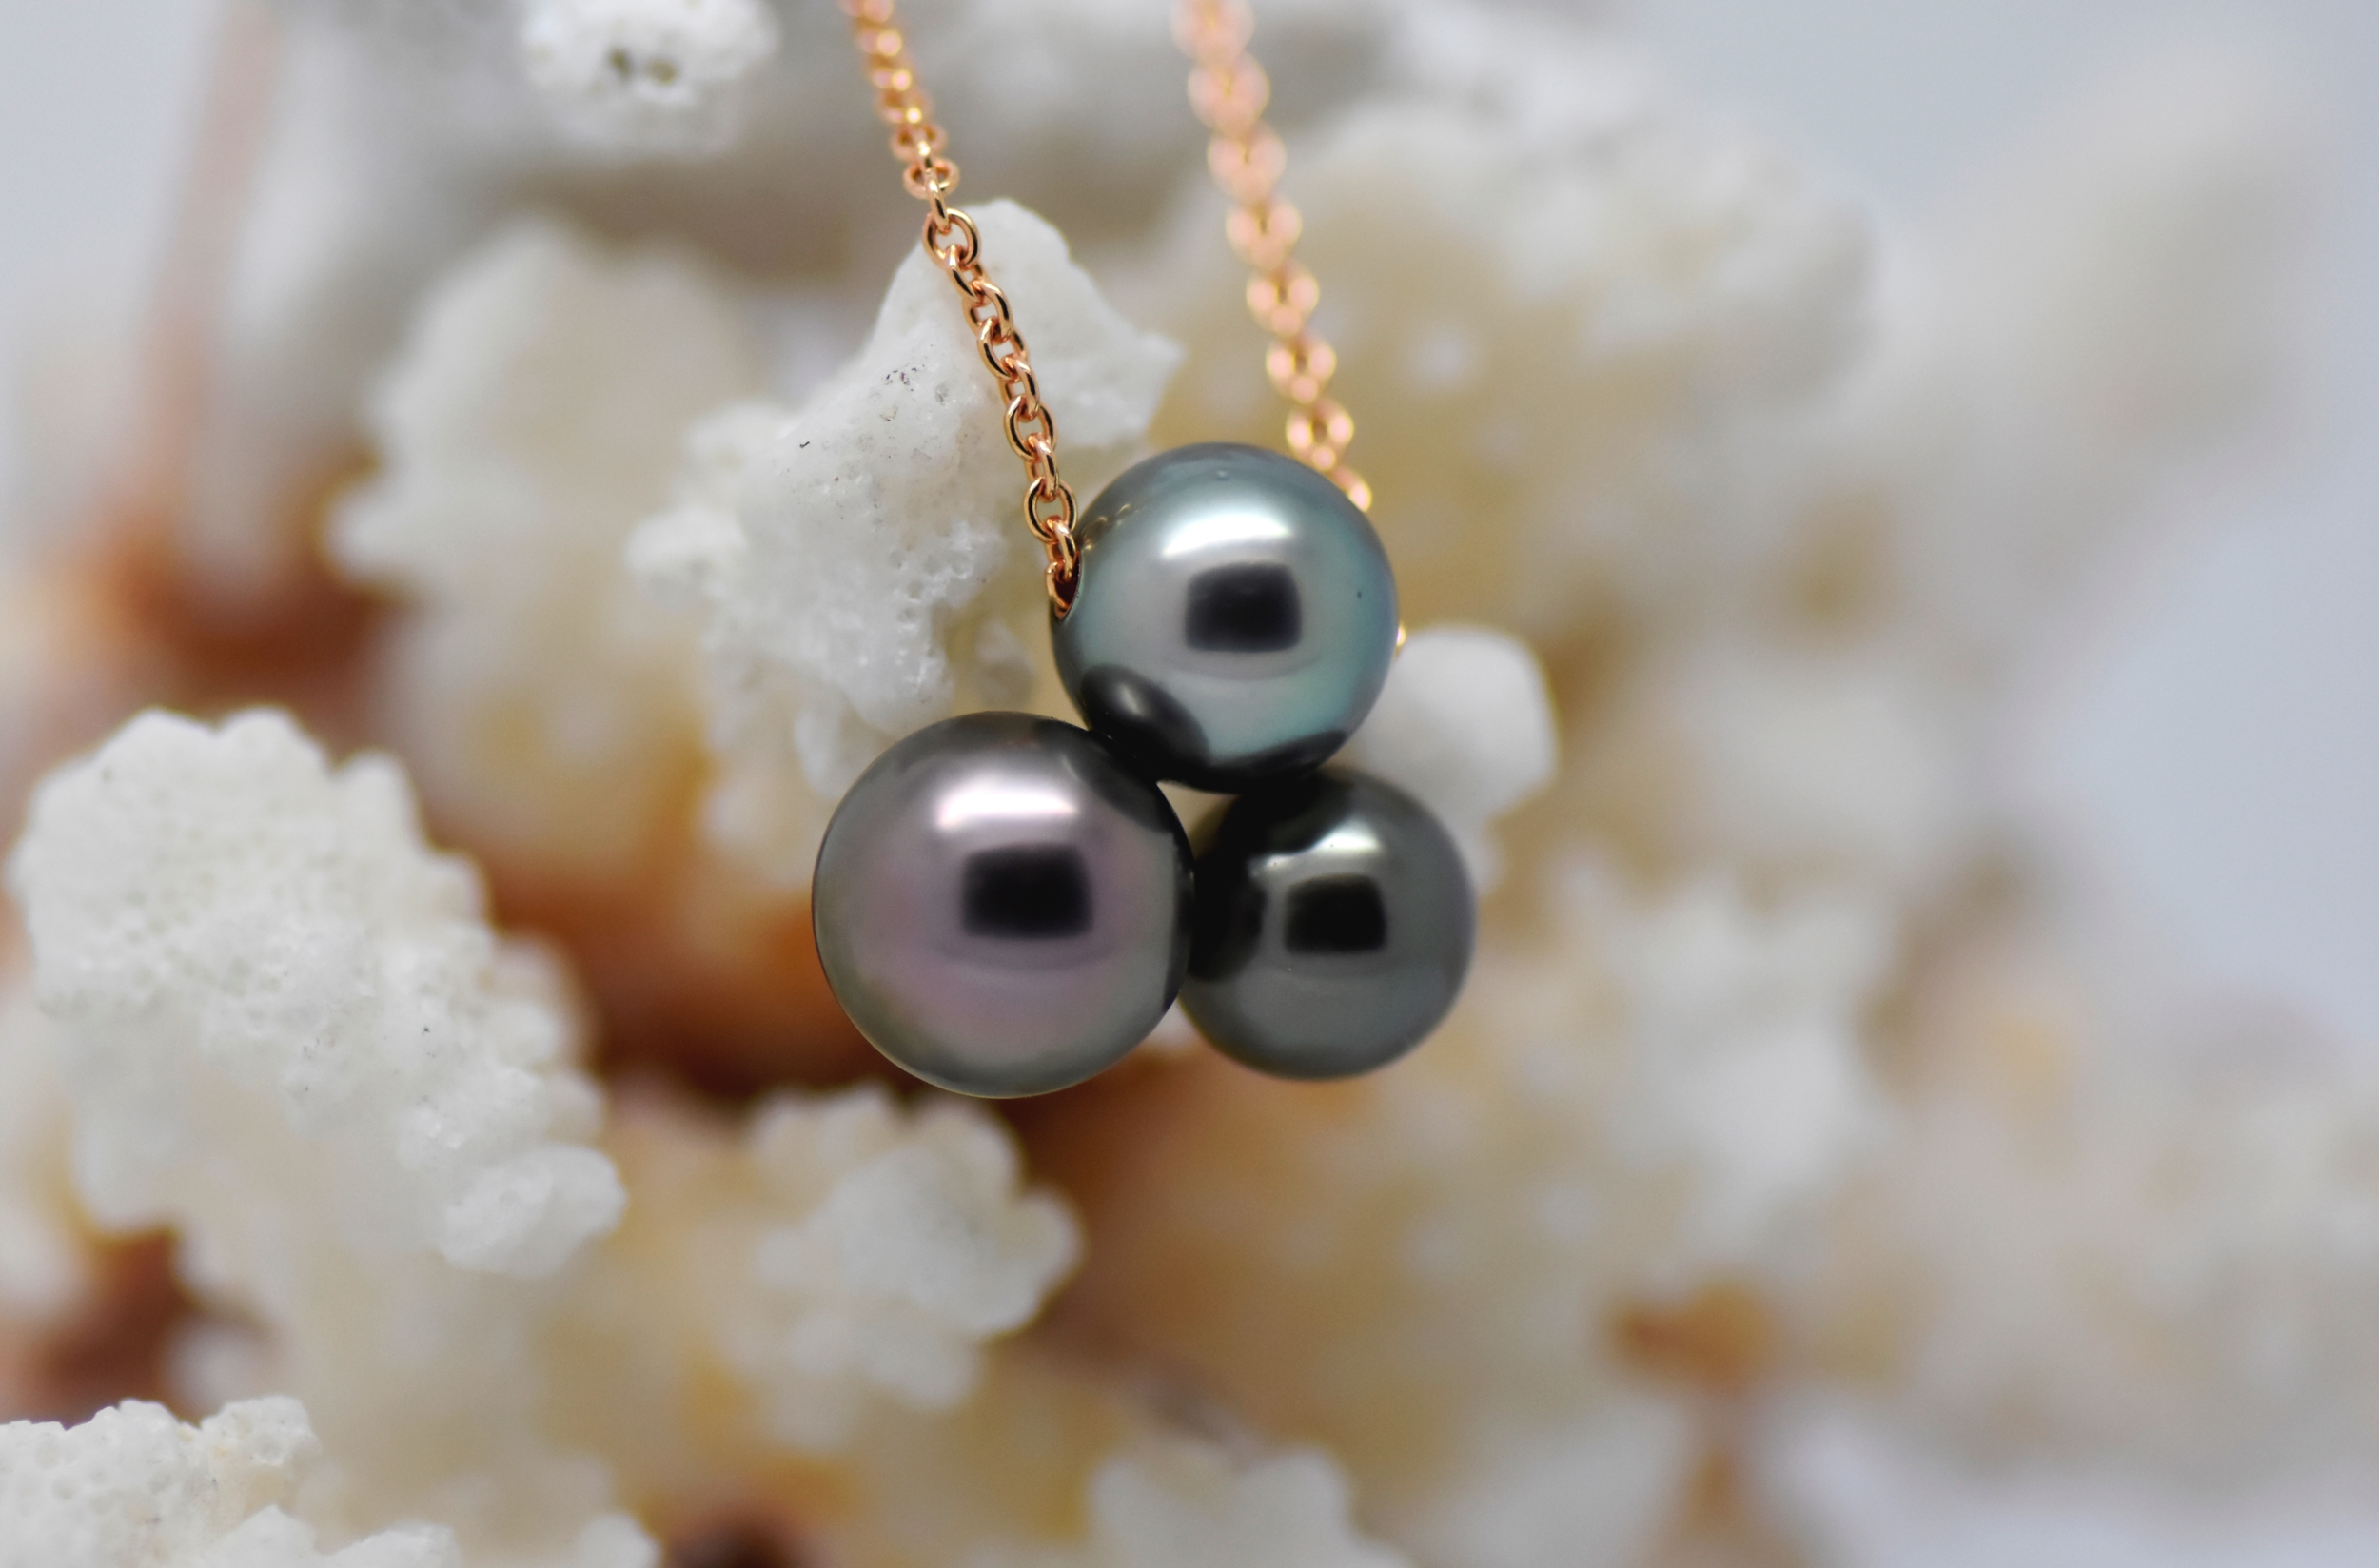 TRIPLET necklace 18 k rose gold chain with 3 Tahitian pearls